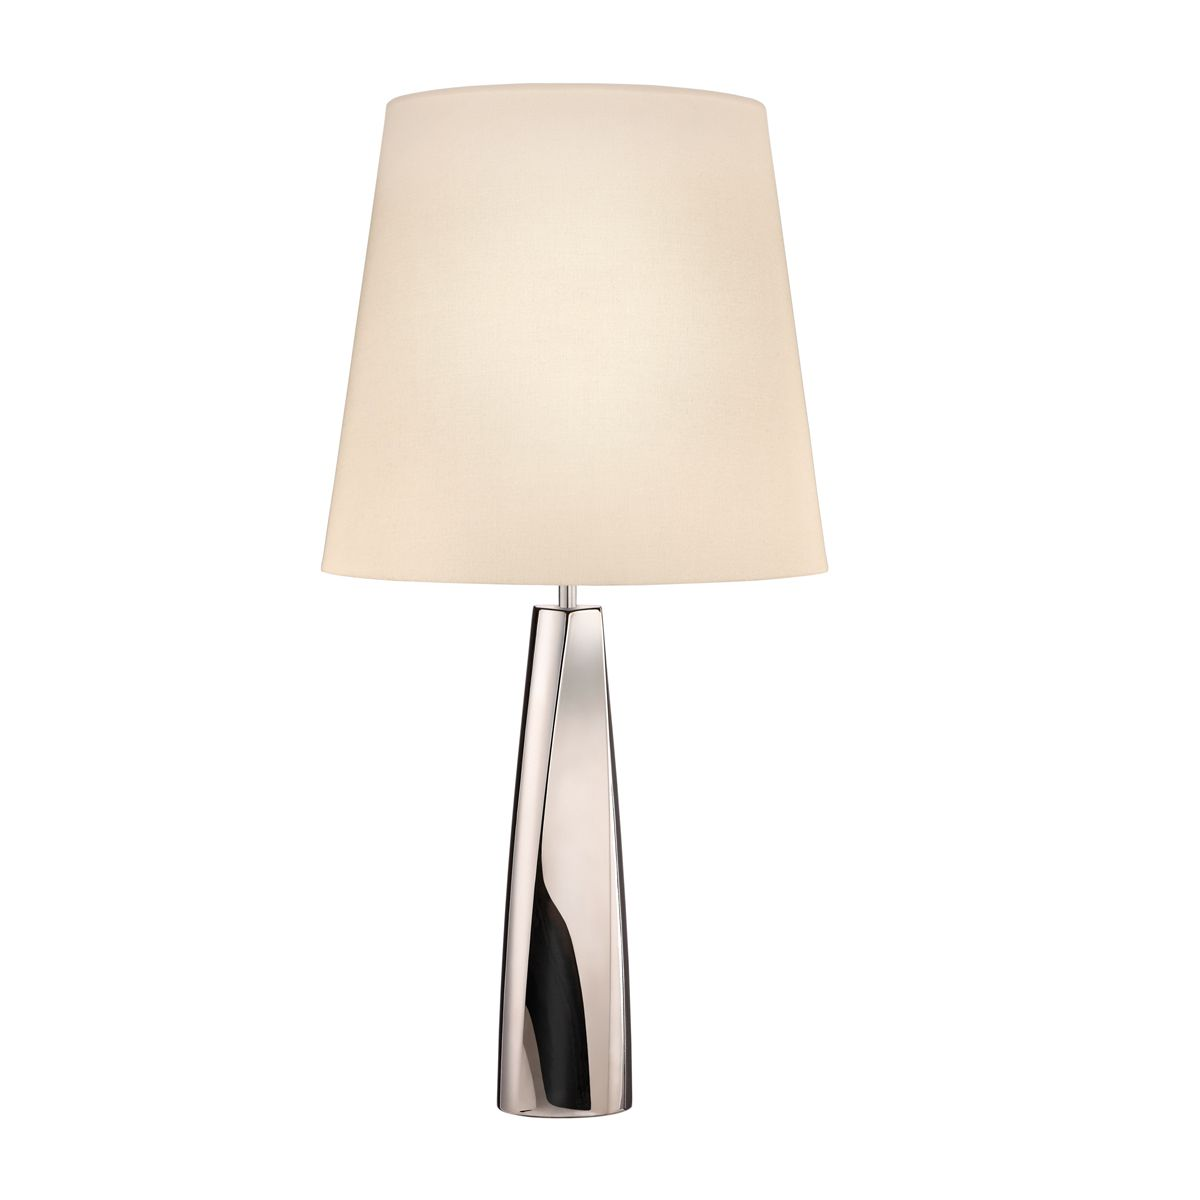 Virage Table Lamp By Sonneman A Way Of Light 6105 13 Table